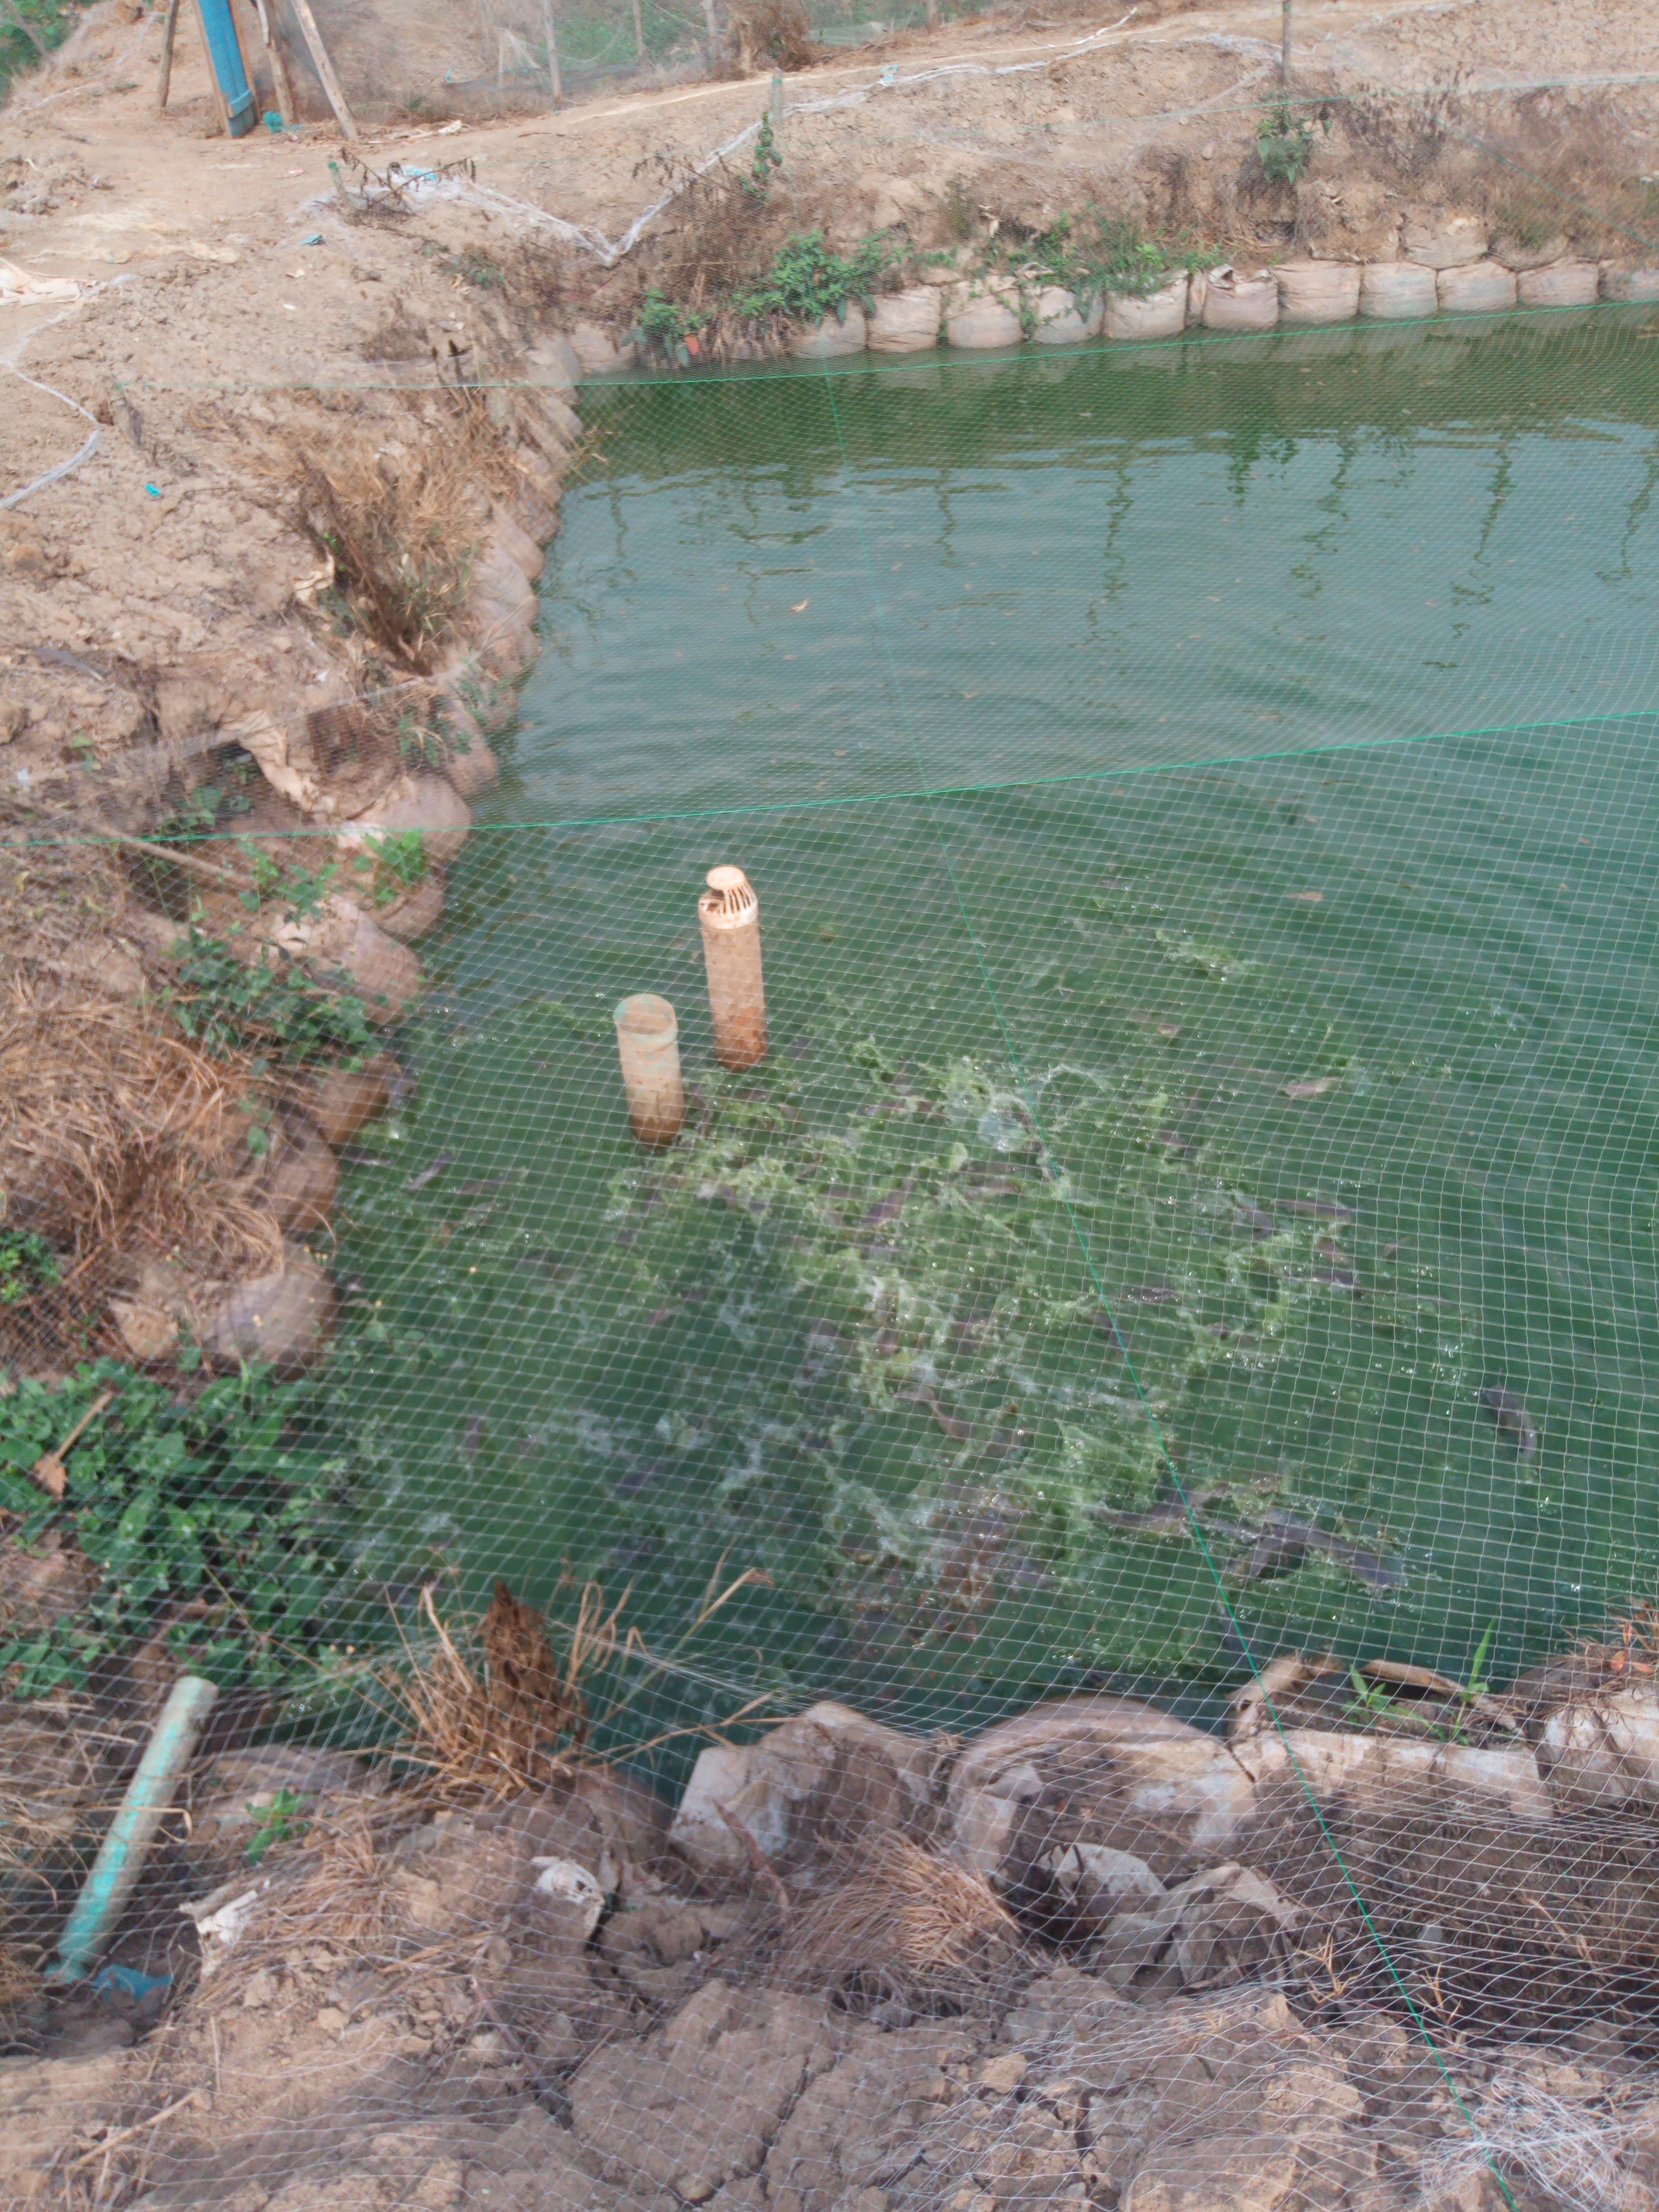 Factors affecting growth rate of fish in Nigeria